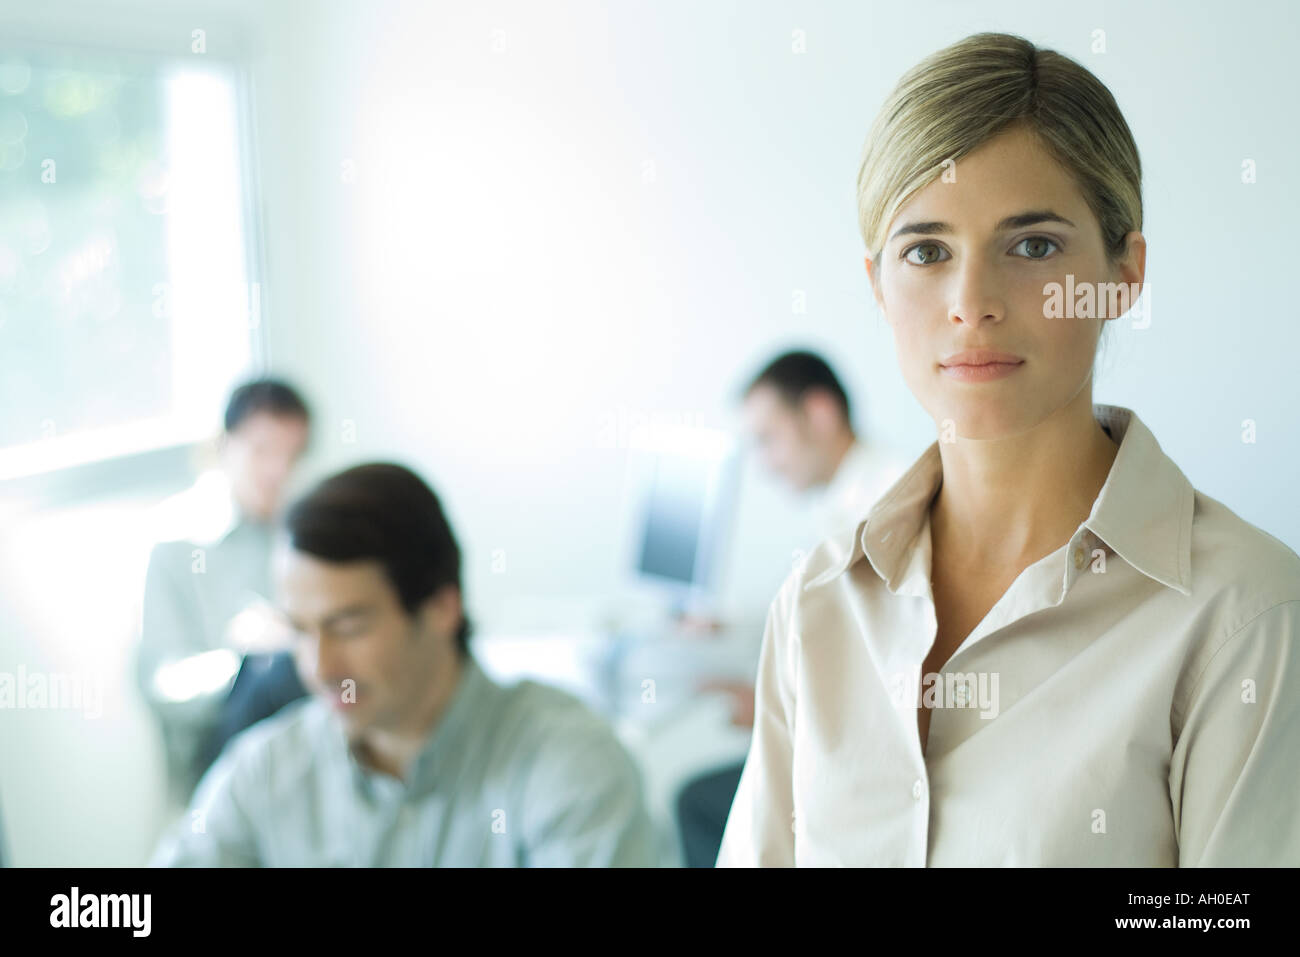 Young businesswoman looking at camera, head and shoulders, associates in background - Stock Image